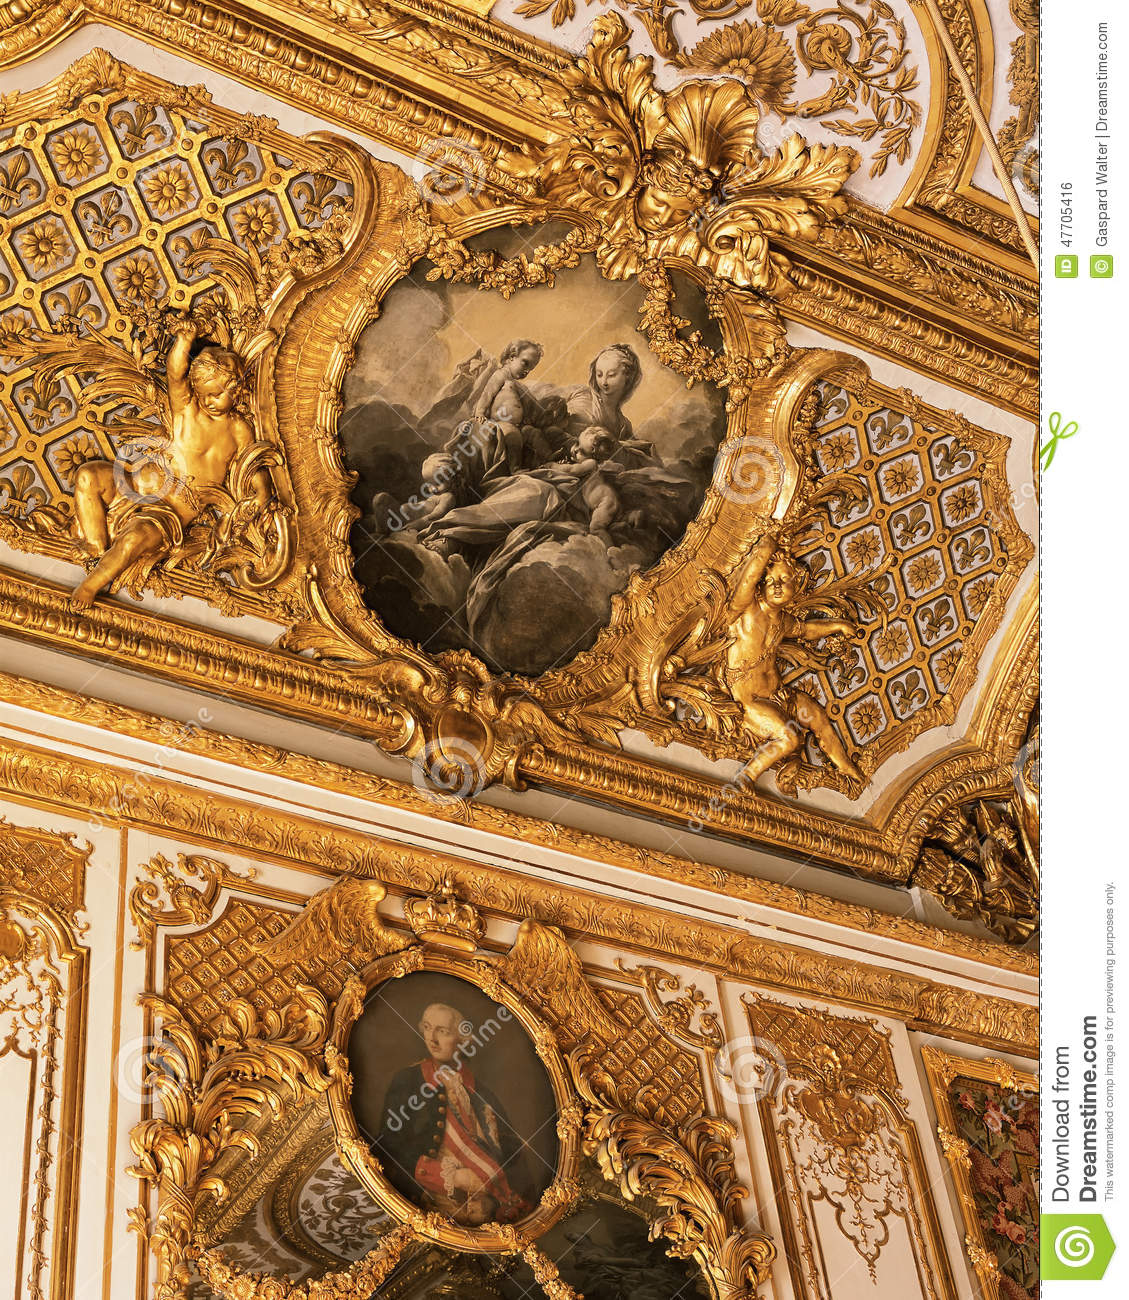 Ceiling from Queen Marie Antoinette bedroom at Versailles Palace